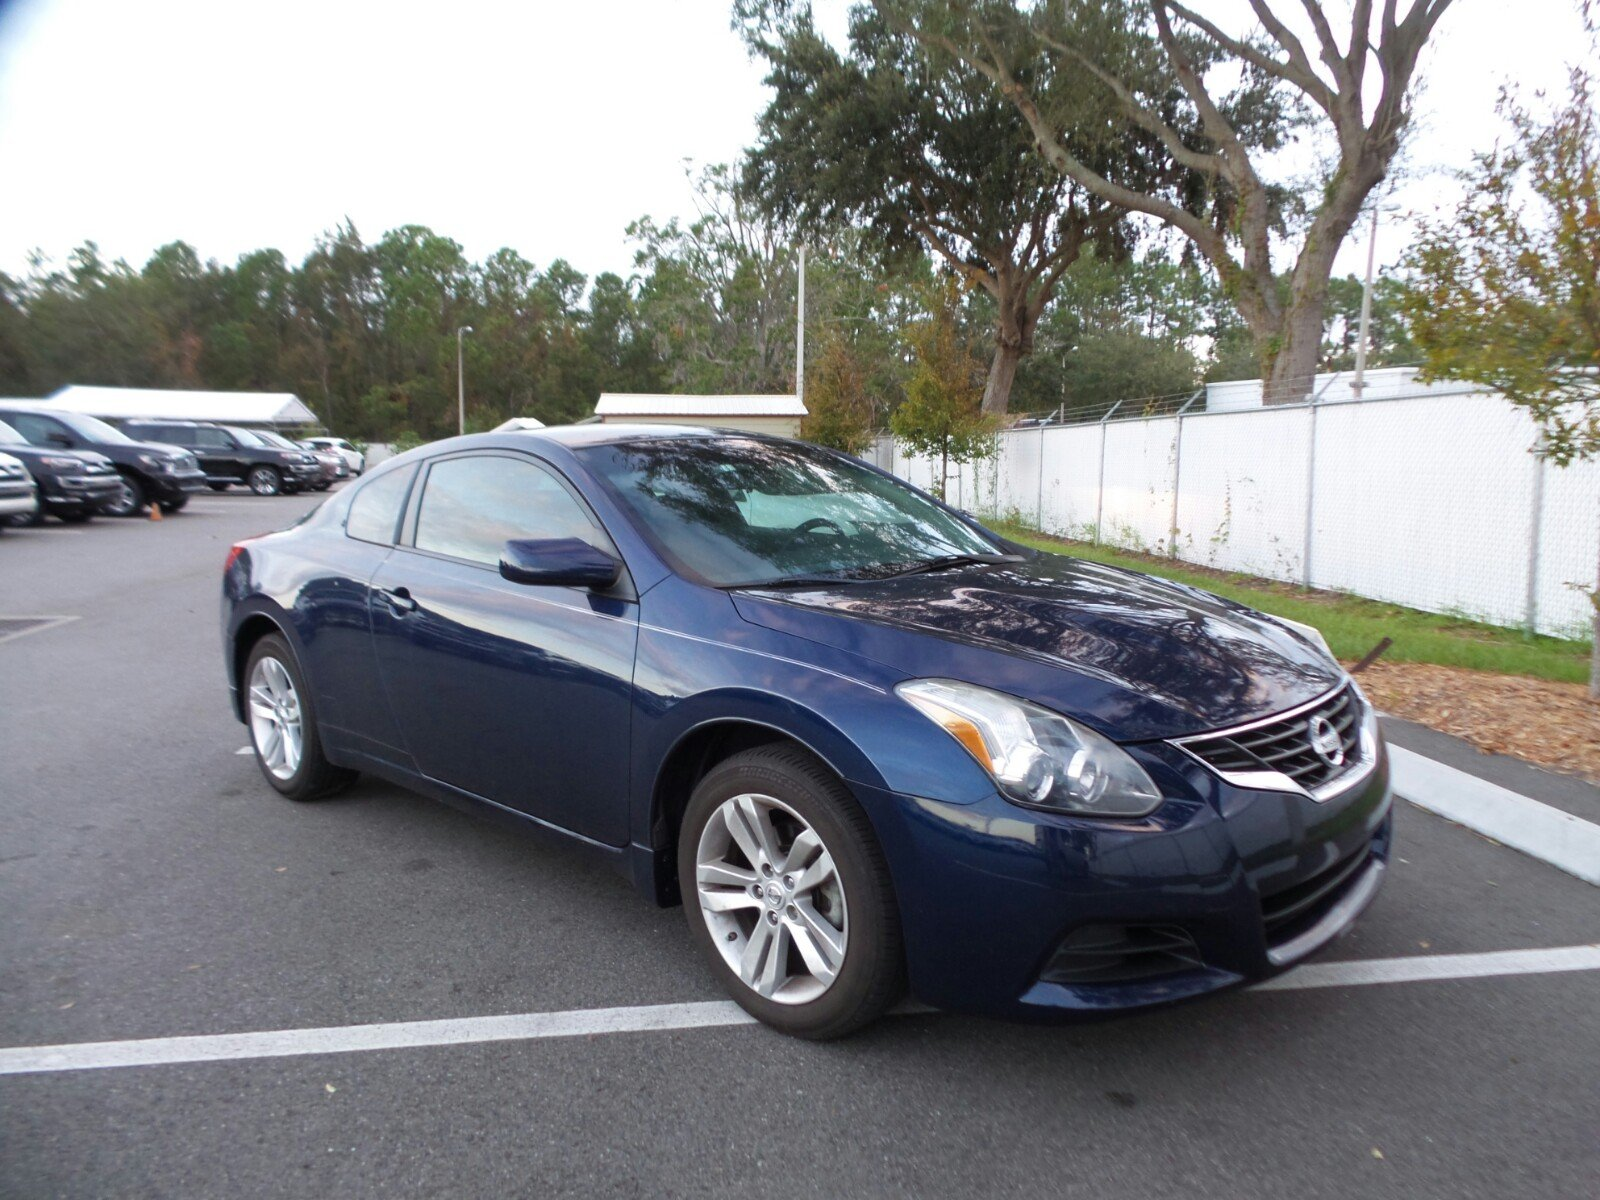 303 used cars for sale near st augustine arlington toyota